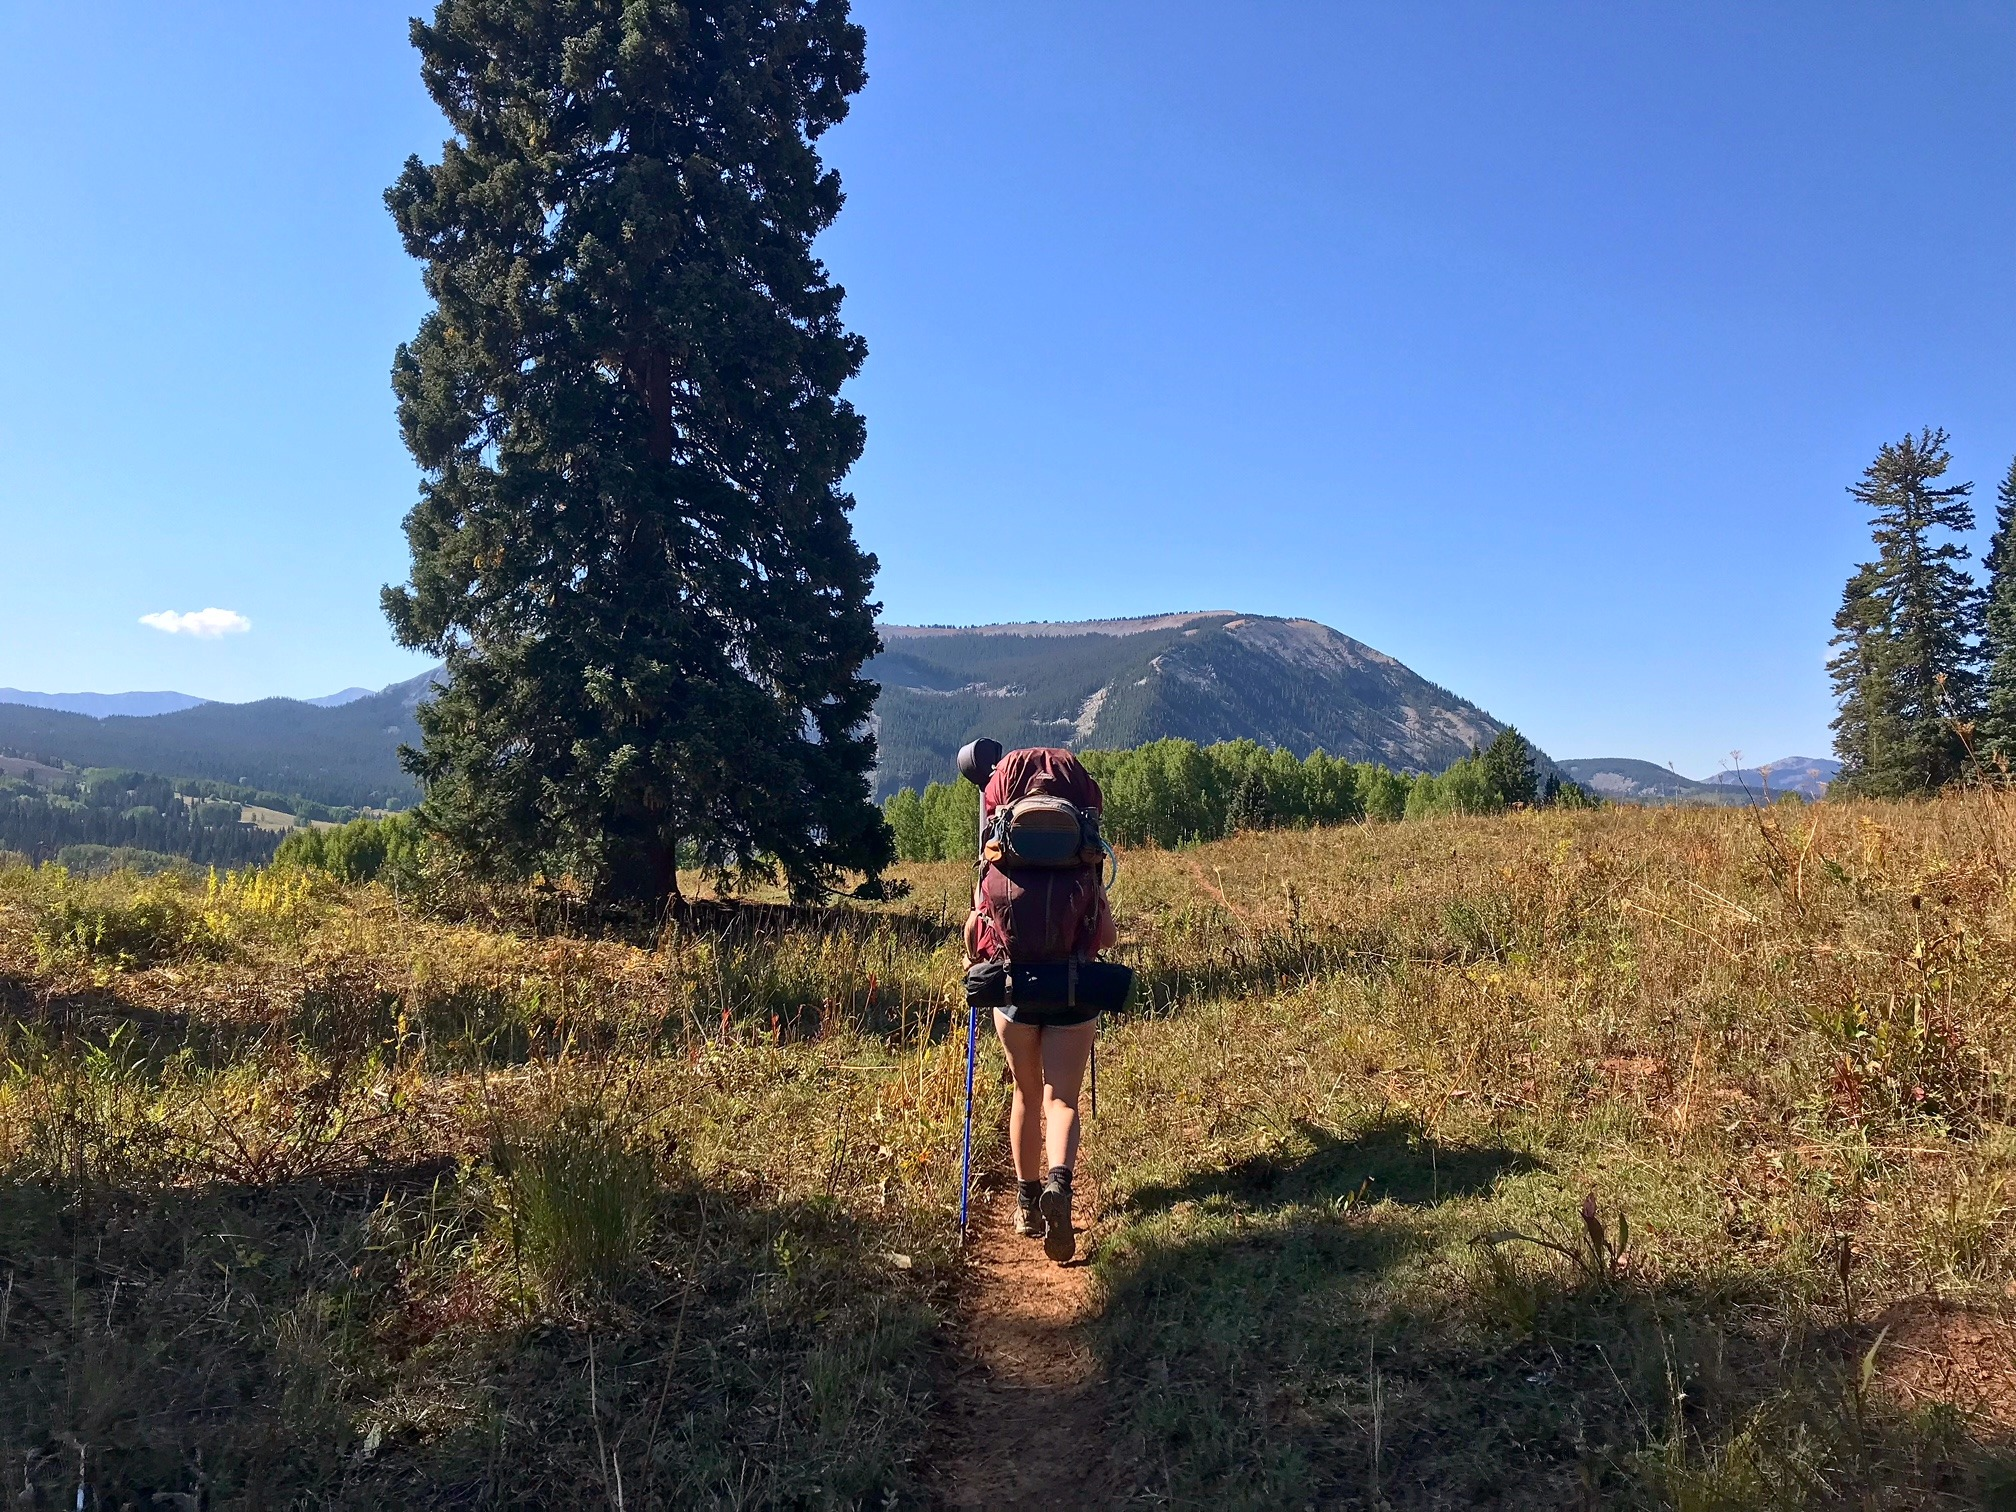 How to Handle Fear While Solo Backpacking